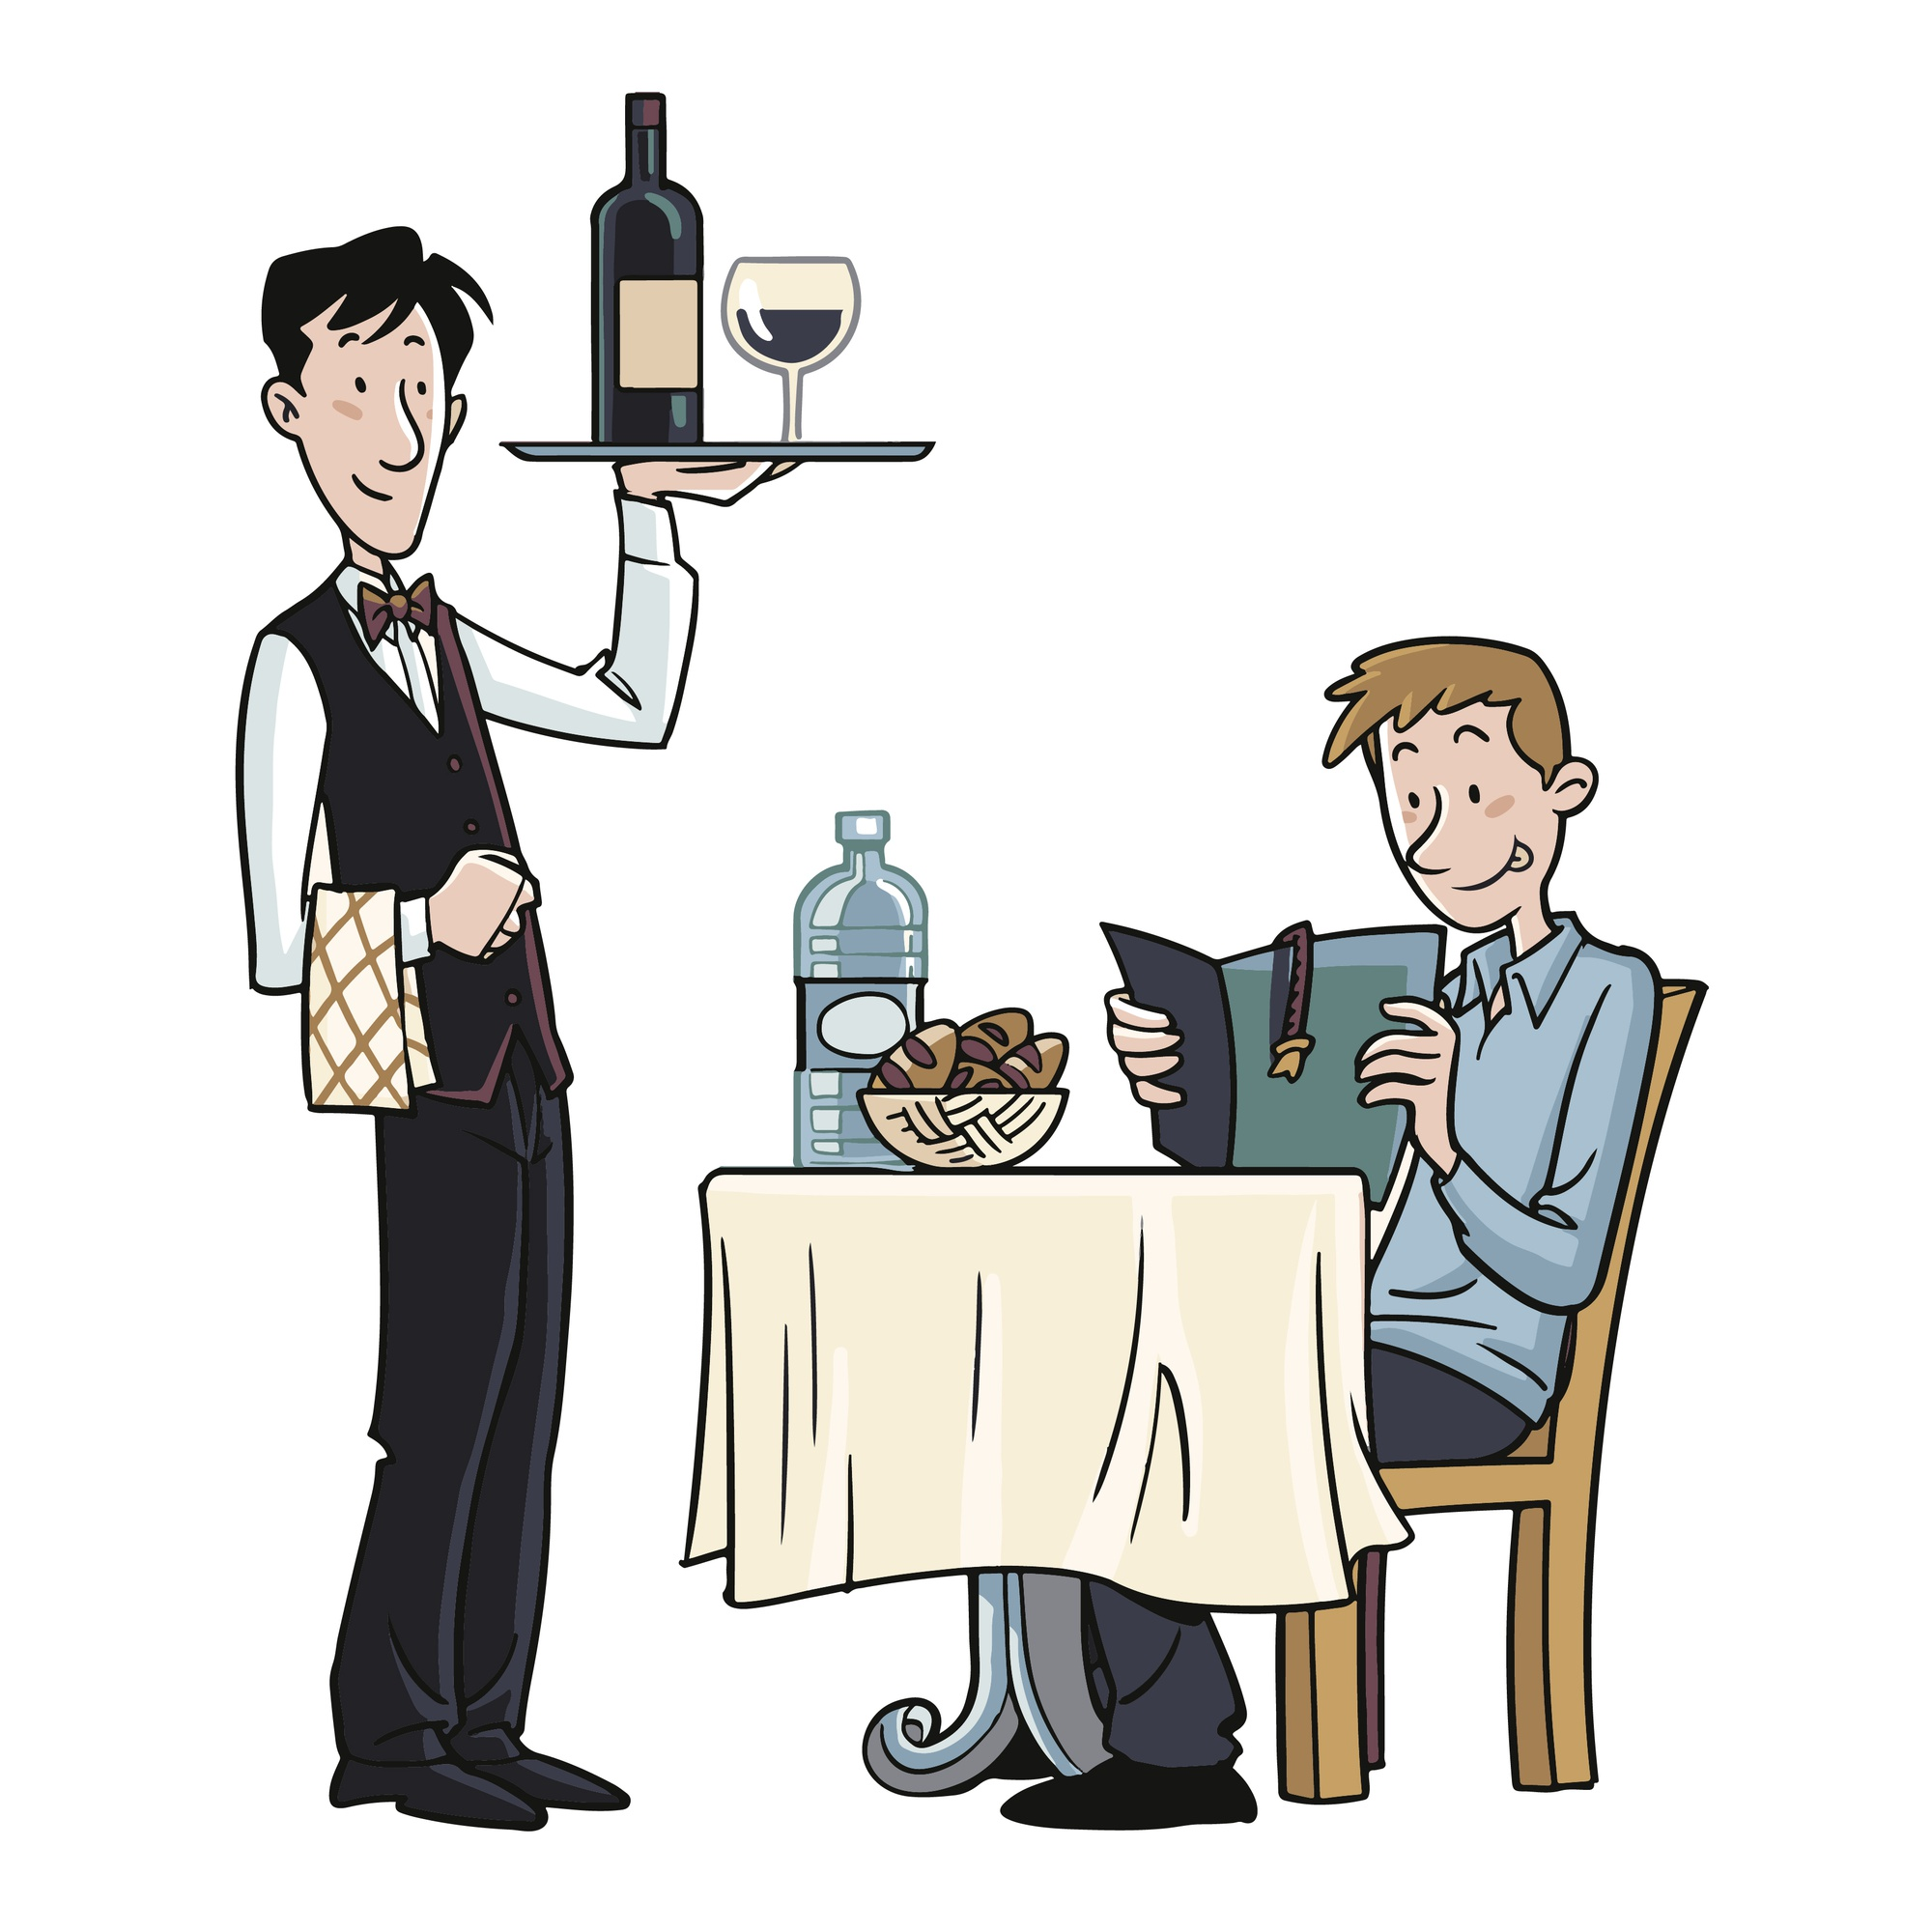 Waiter serving a customer in a restaurant